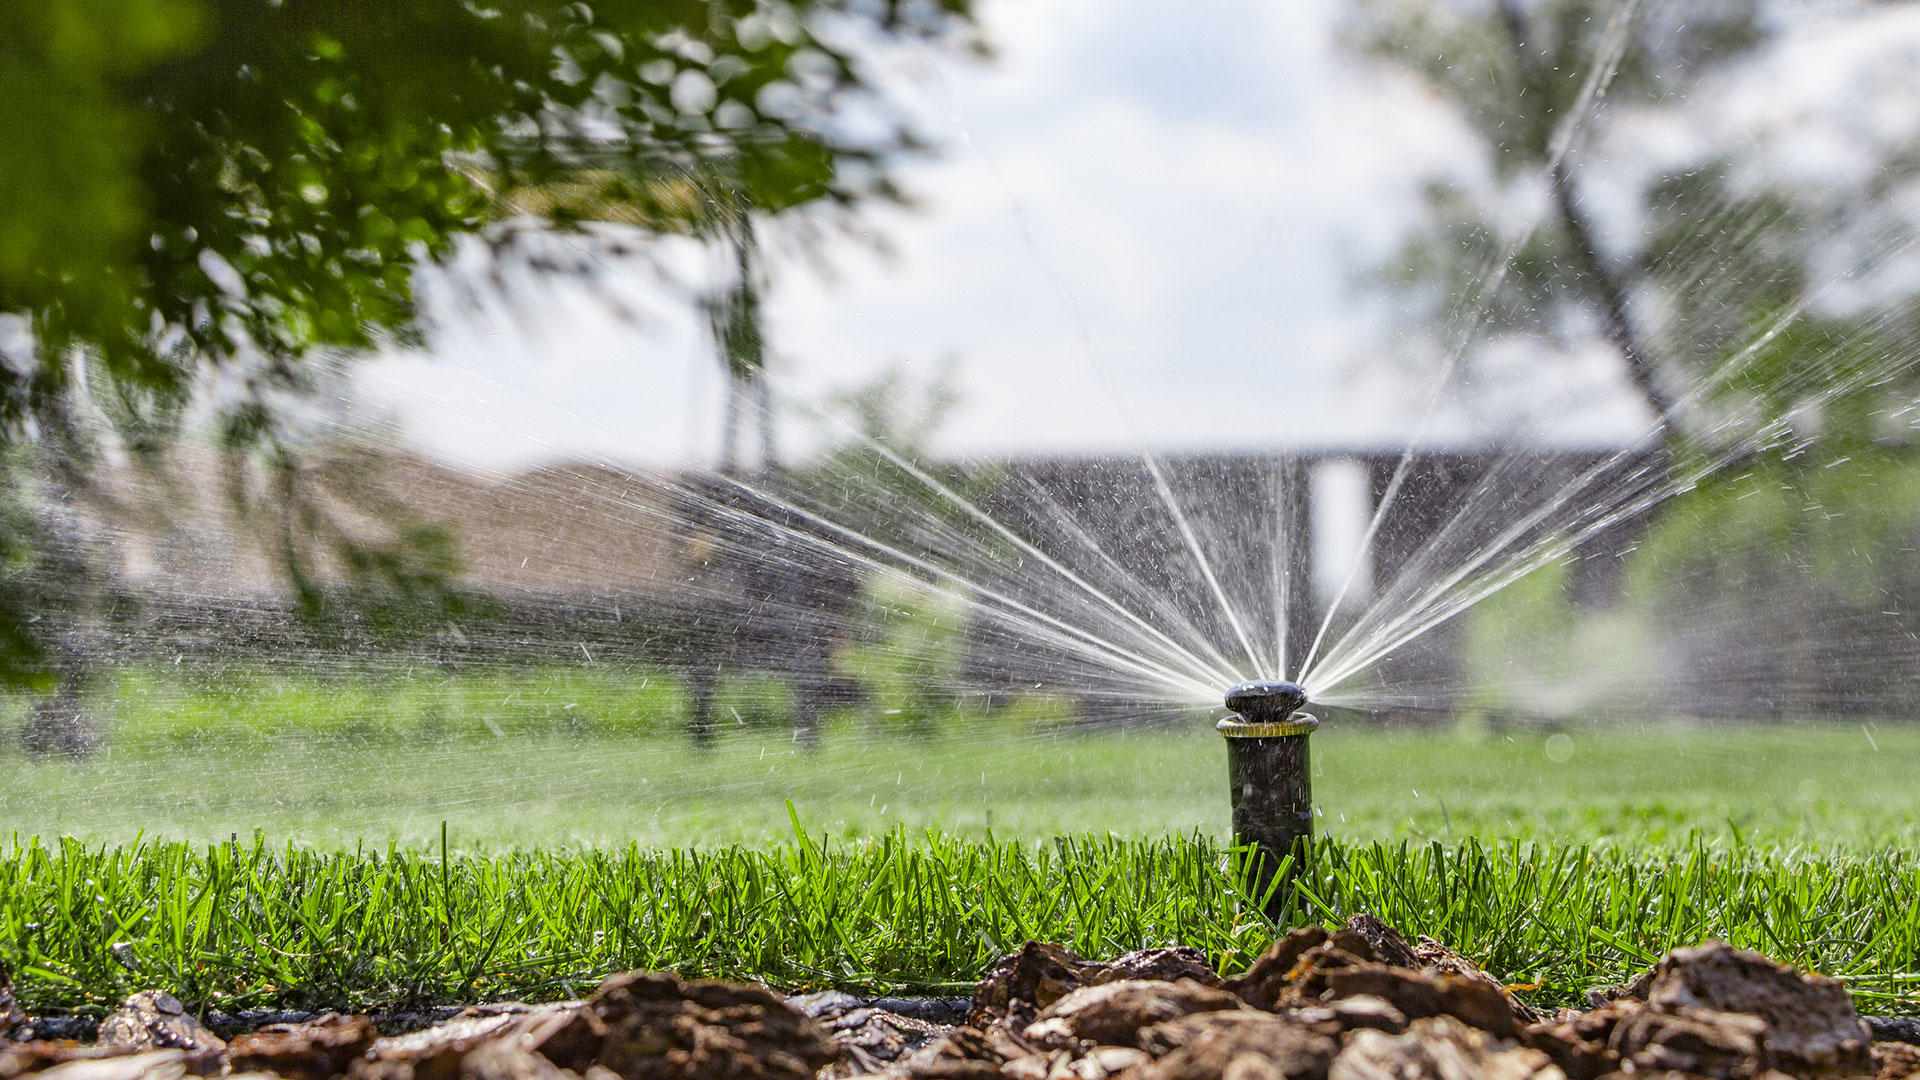 Irrigation System Installation Houston - SWP Landscaping Company